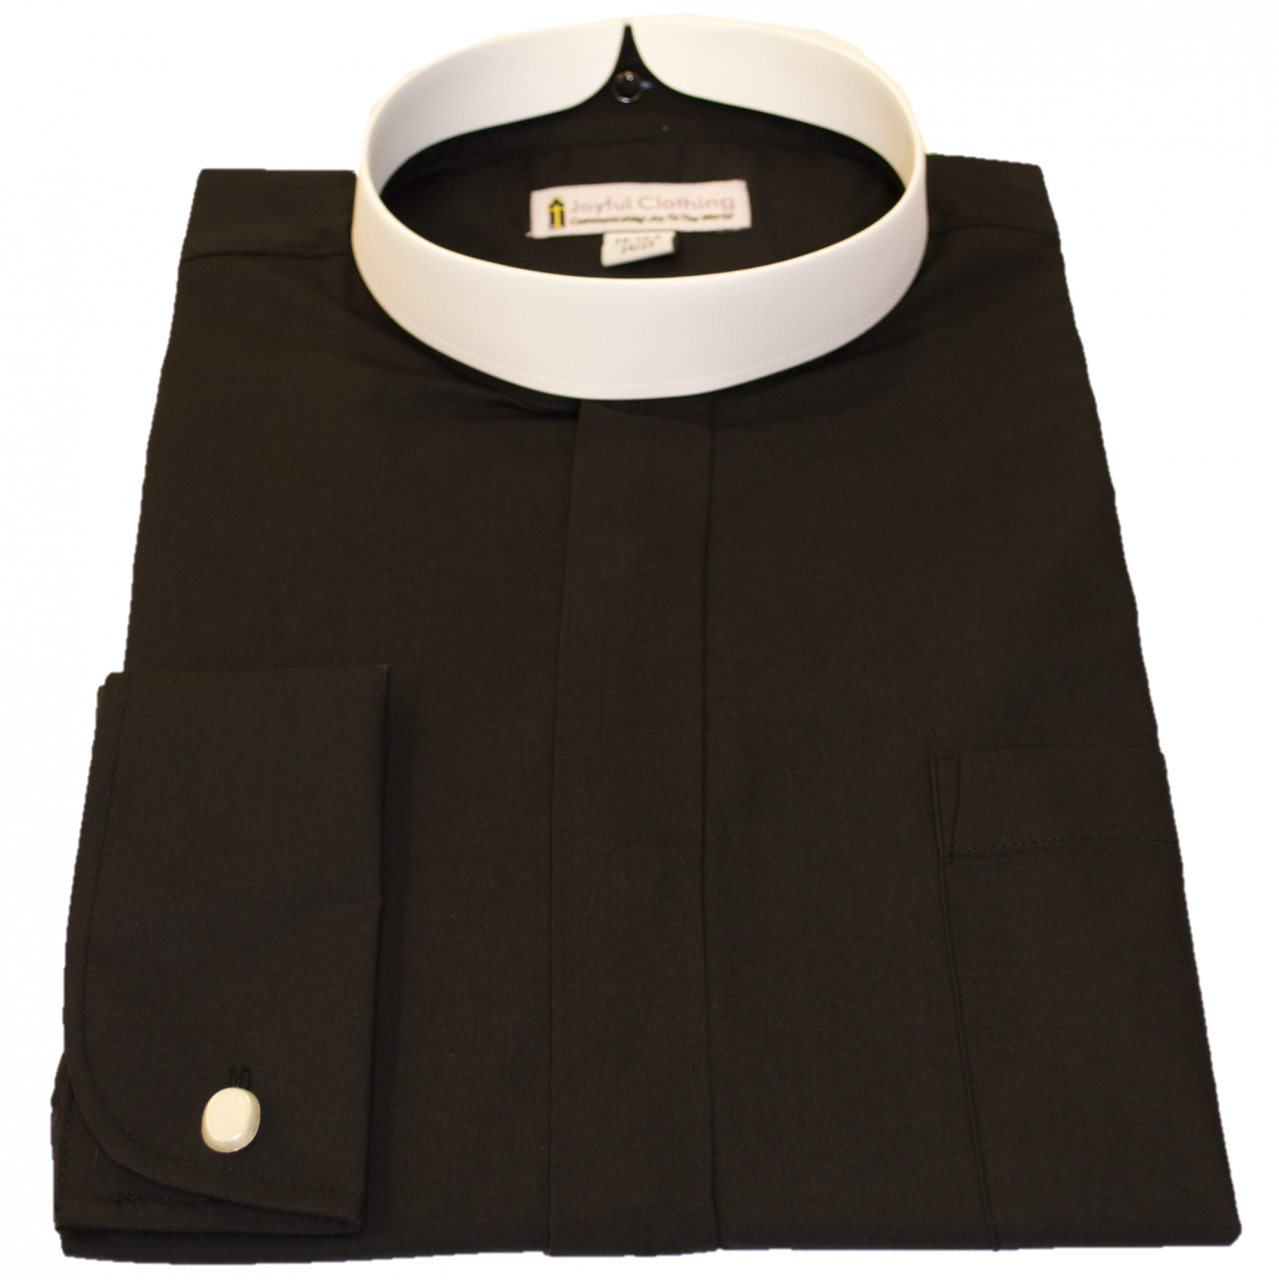 201. Men's Long-Sleeve Full Collar Banded Clergy Shirt - Black